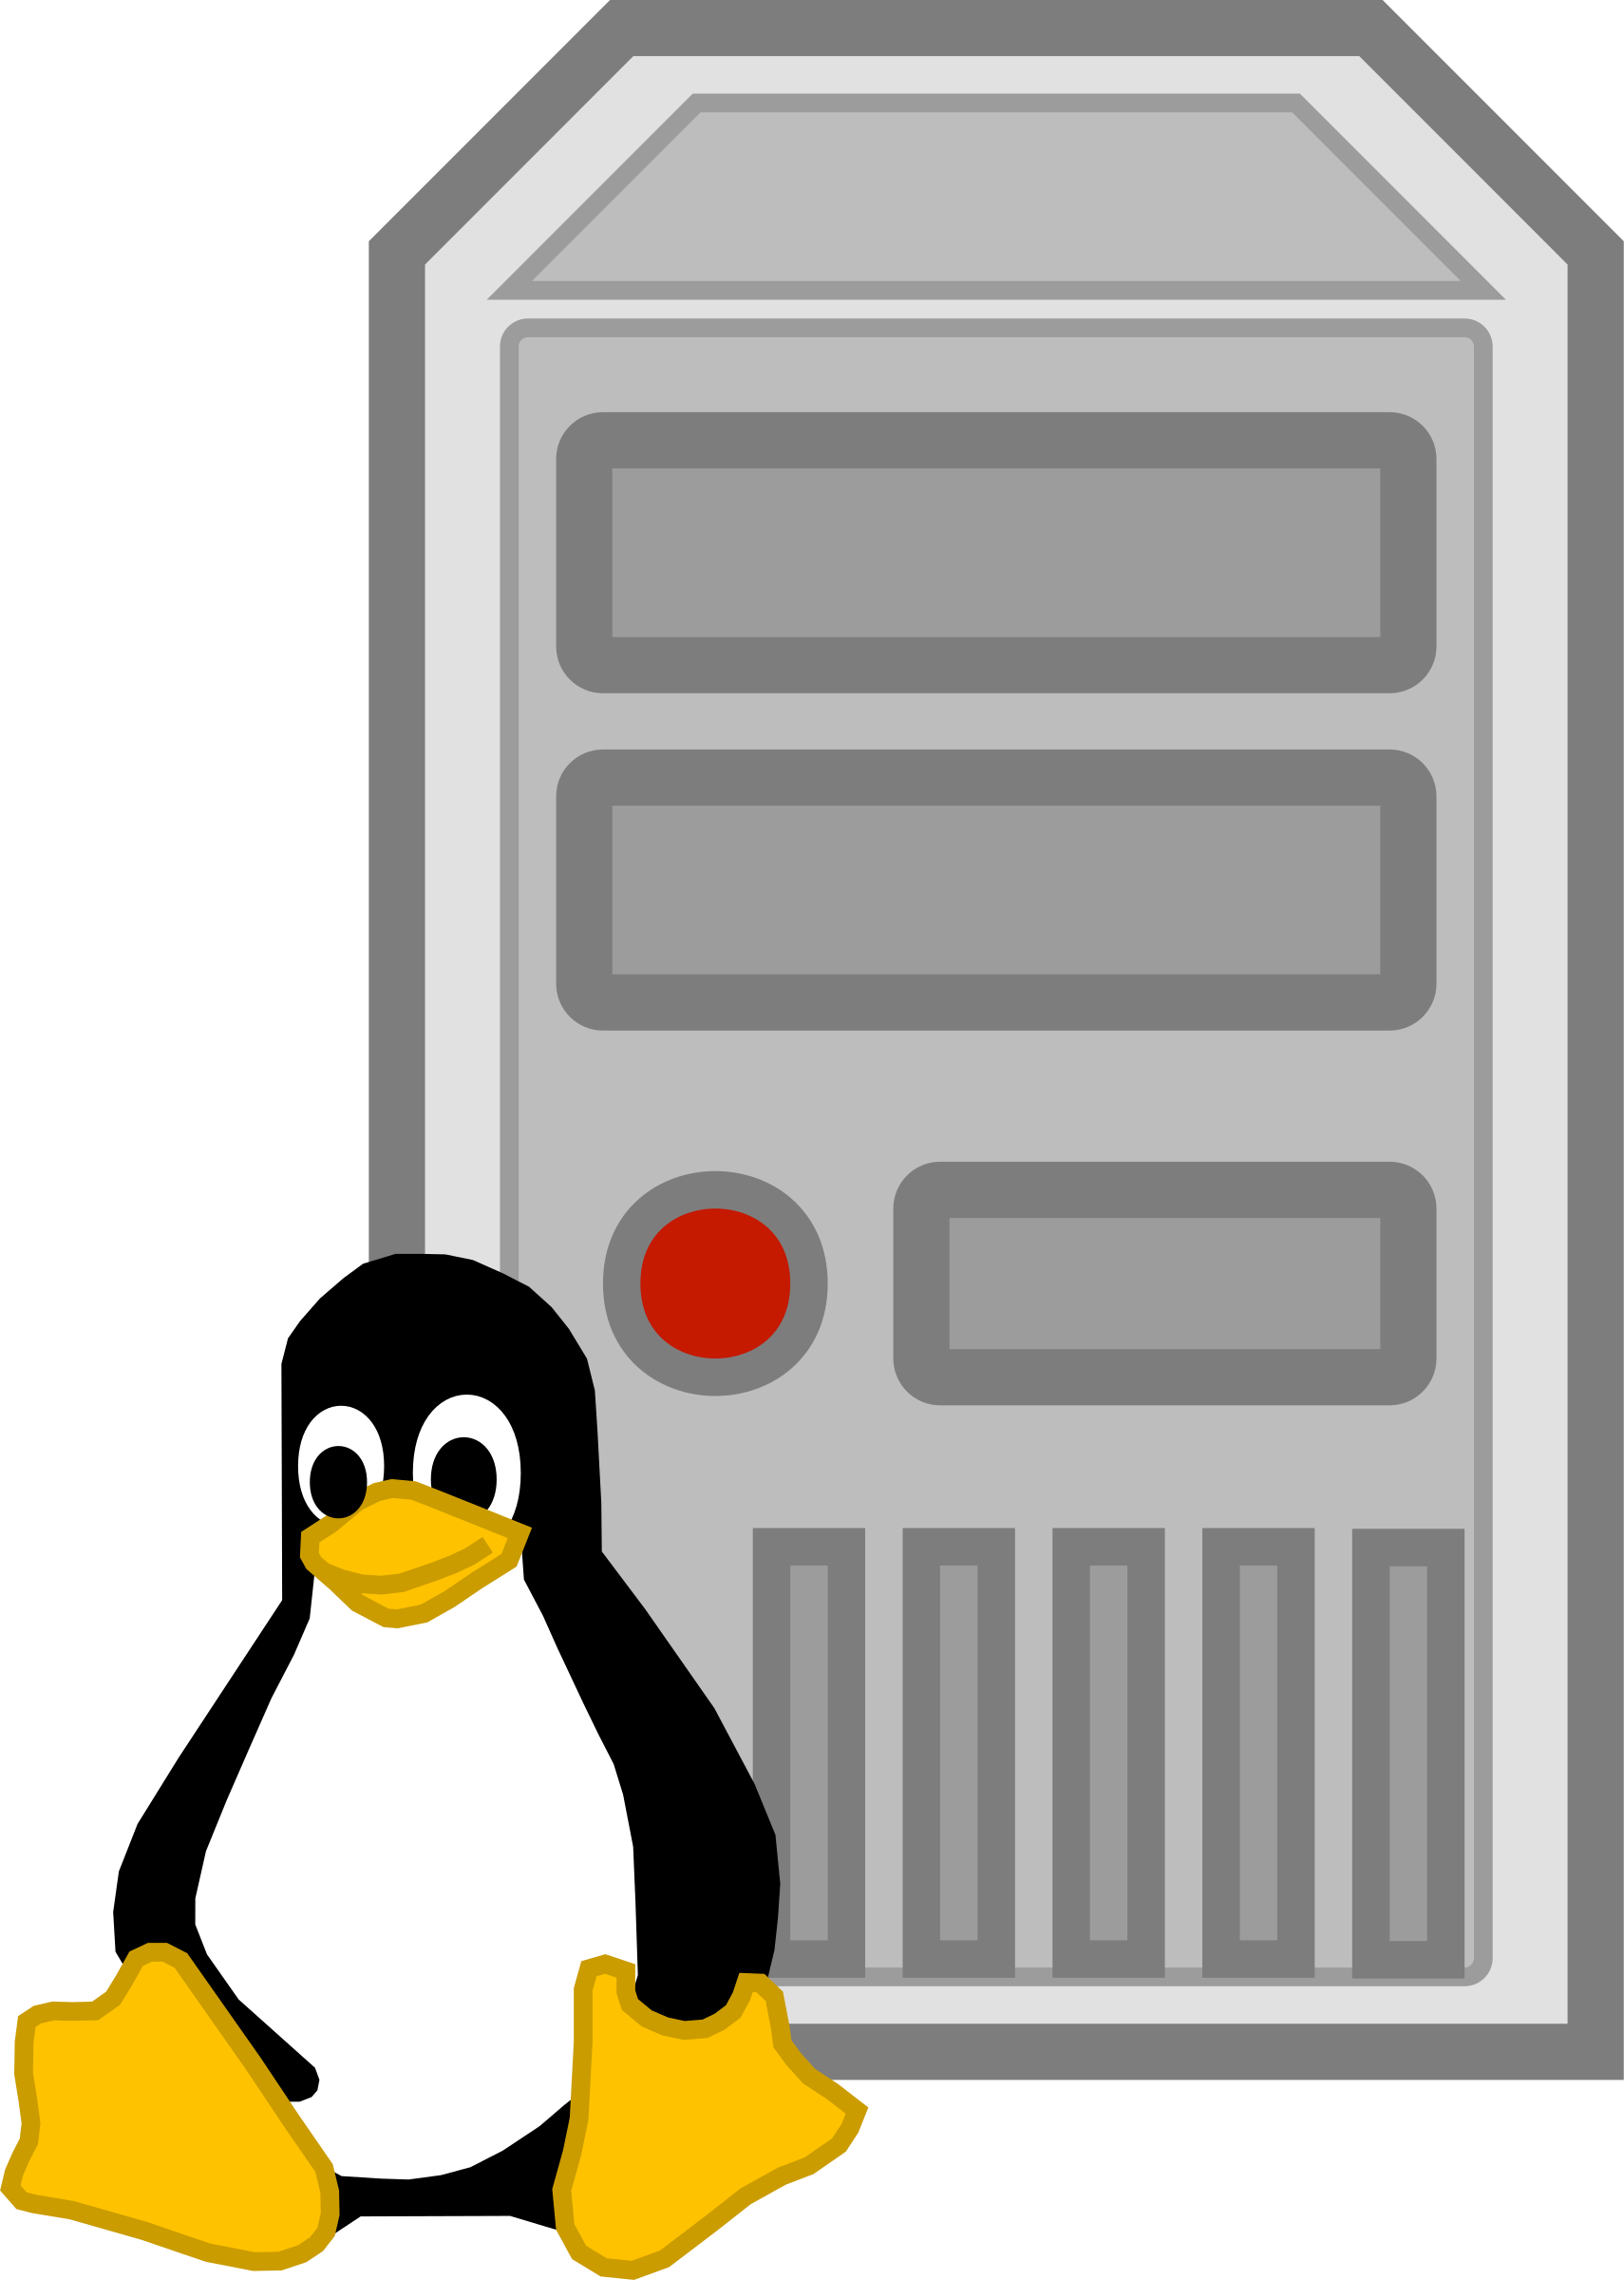 Linux clipart #16, Download drawings